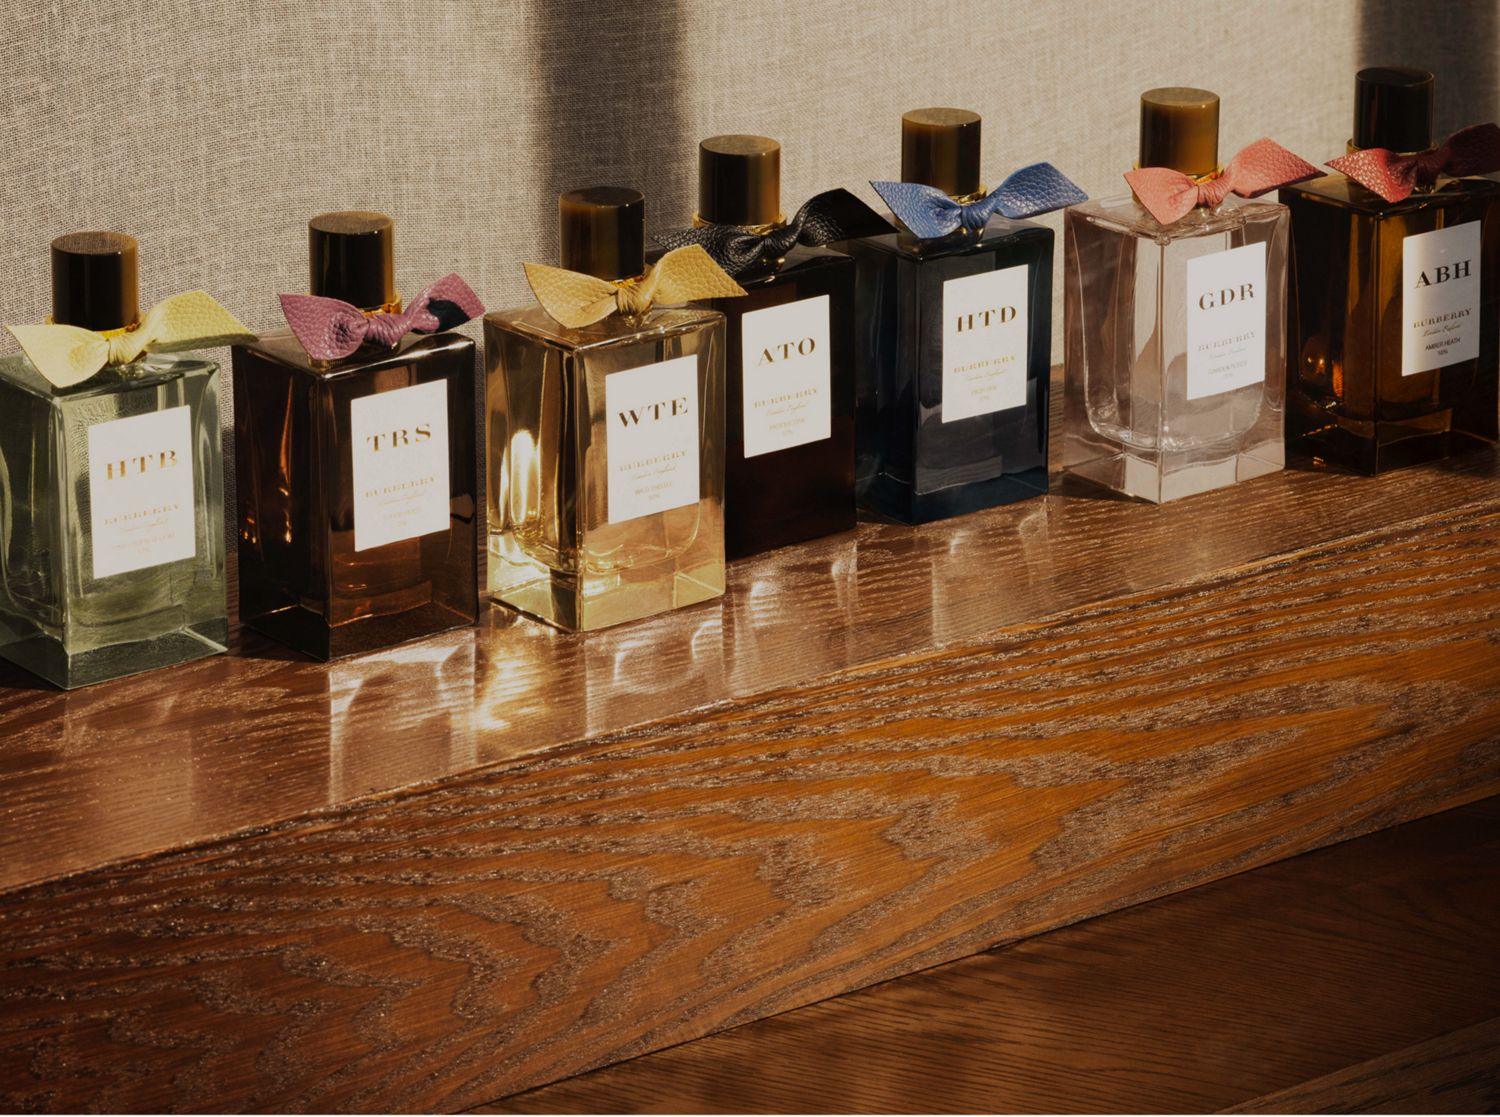 Discover the scents